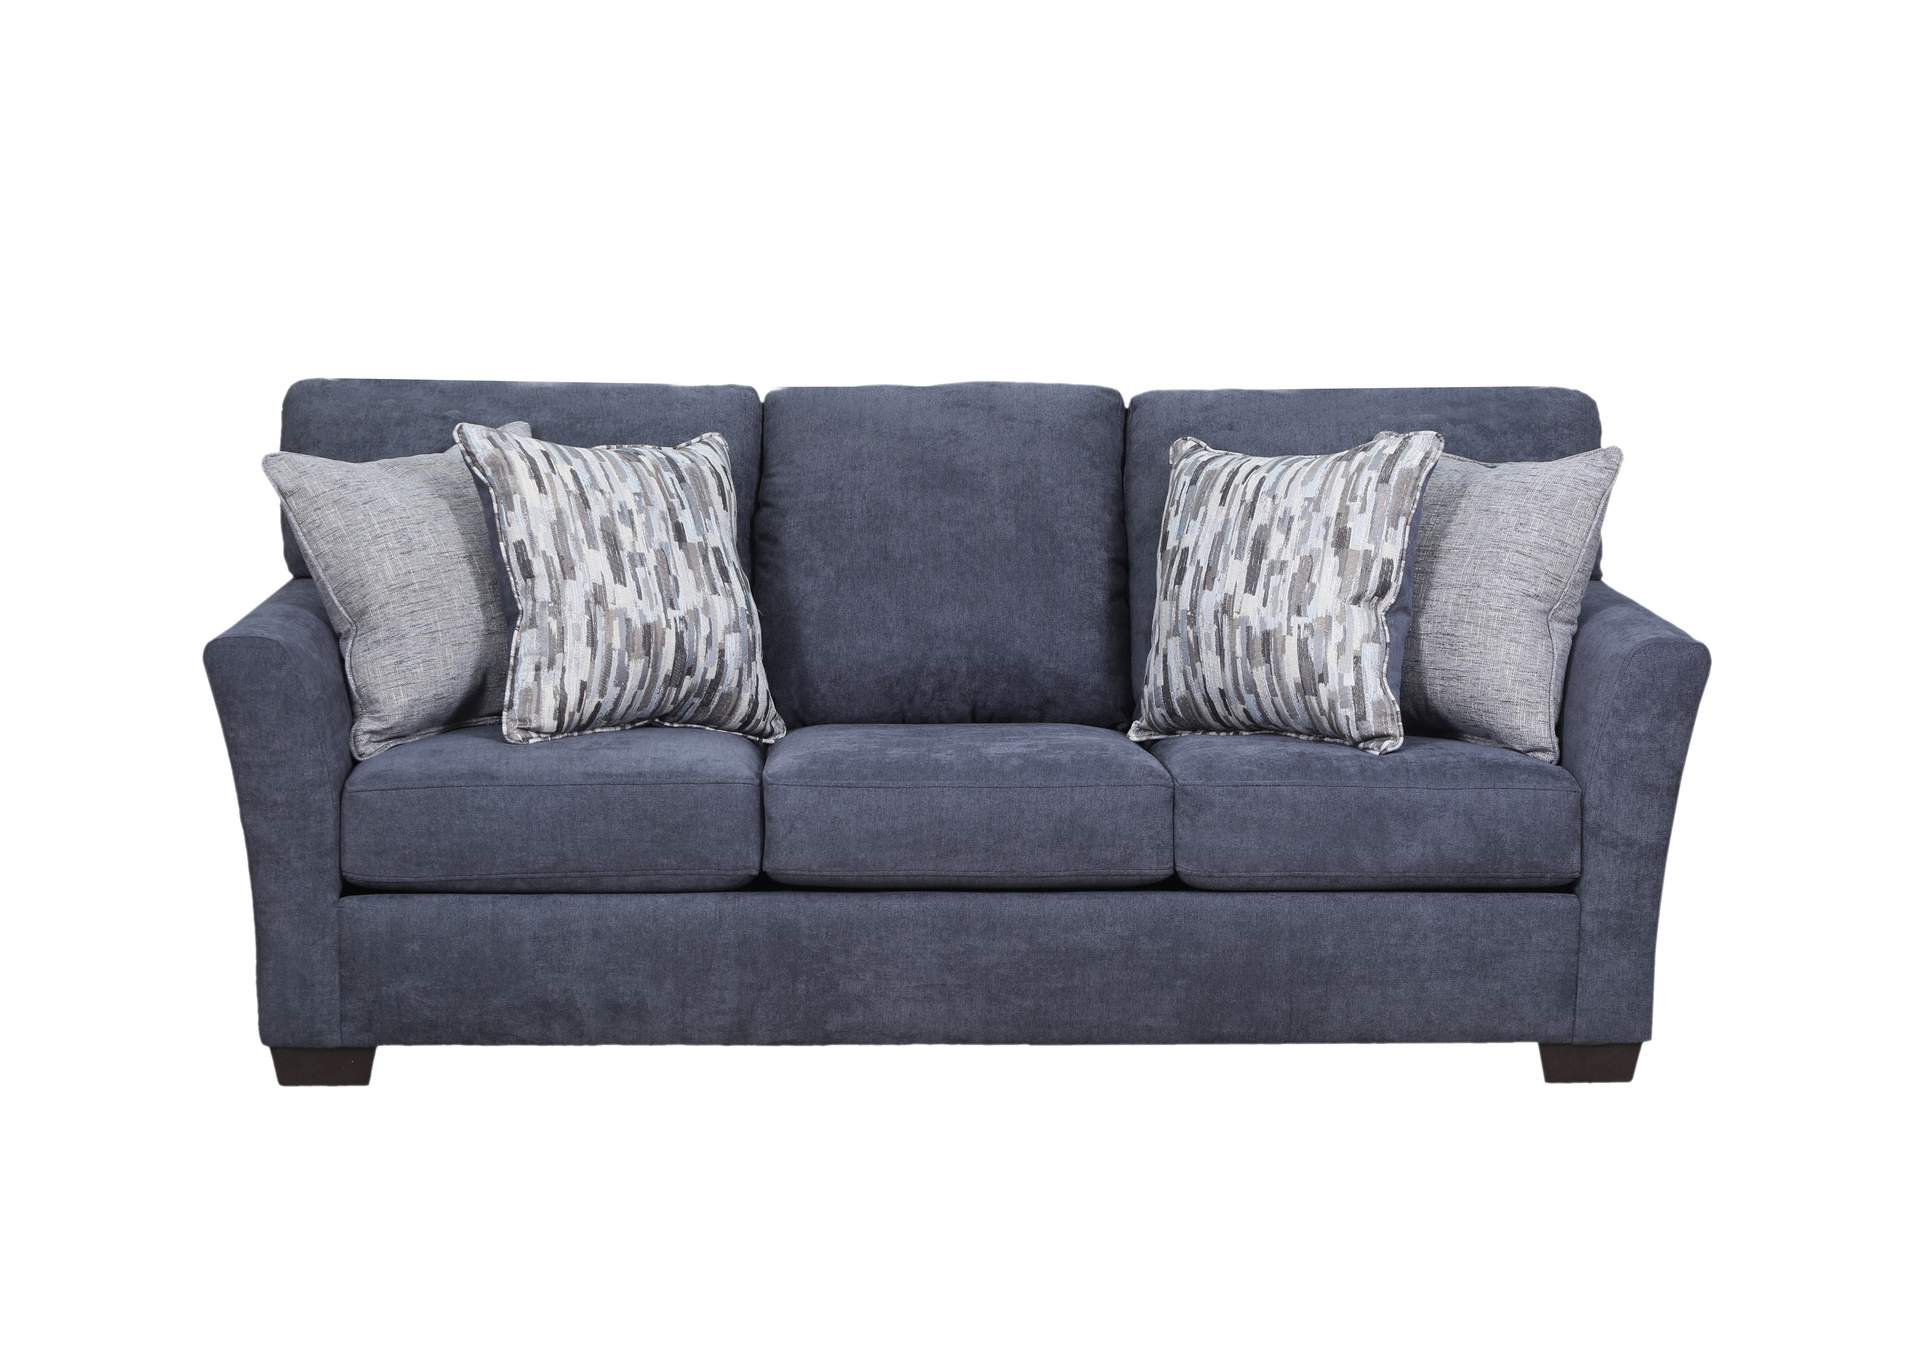 7058 Laf 2 Pc Sectional – Pacific Steel Blue Sit & Sleep In Walker Gray Power Reclining Sofas (View 10 of 15)